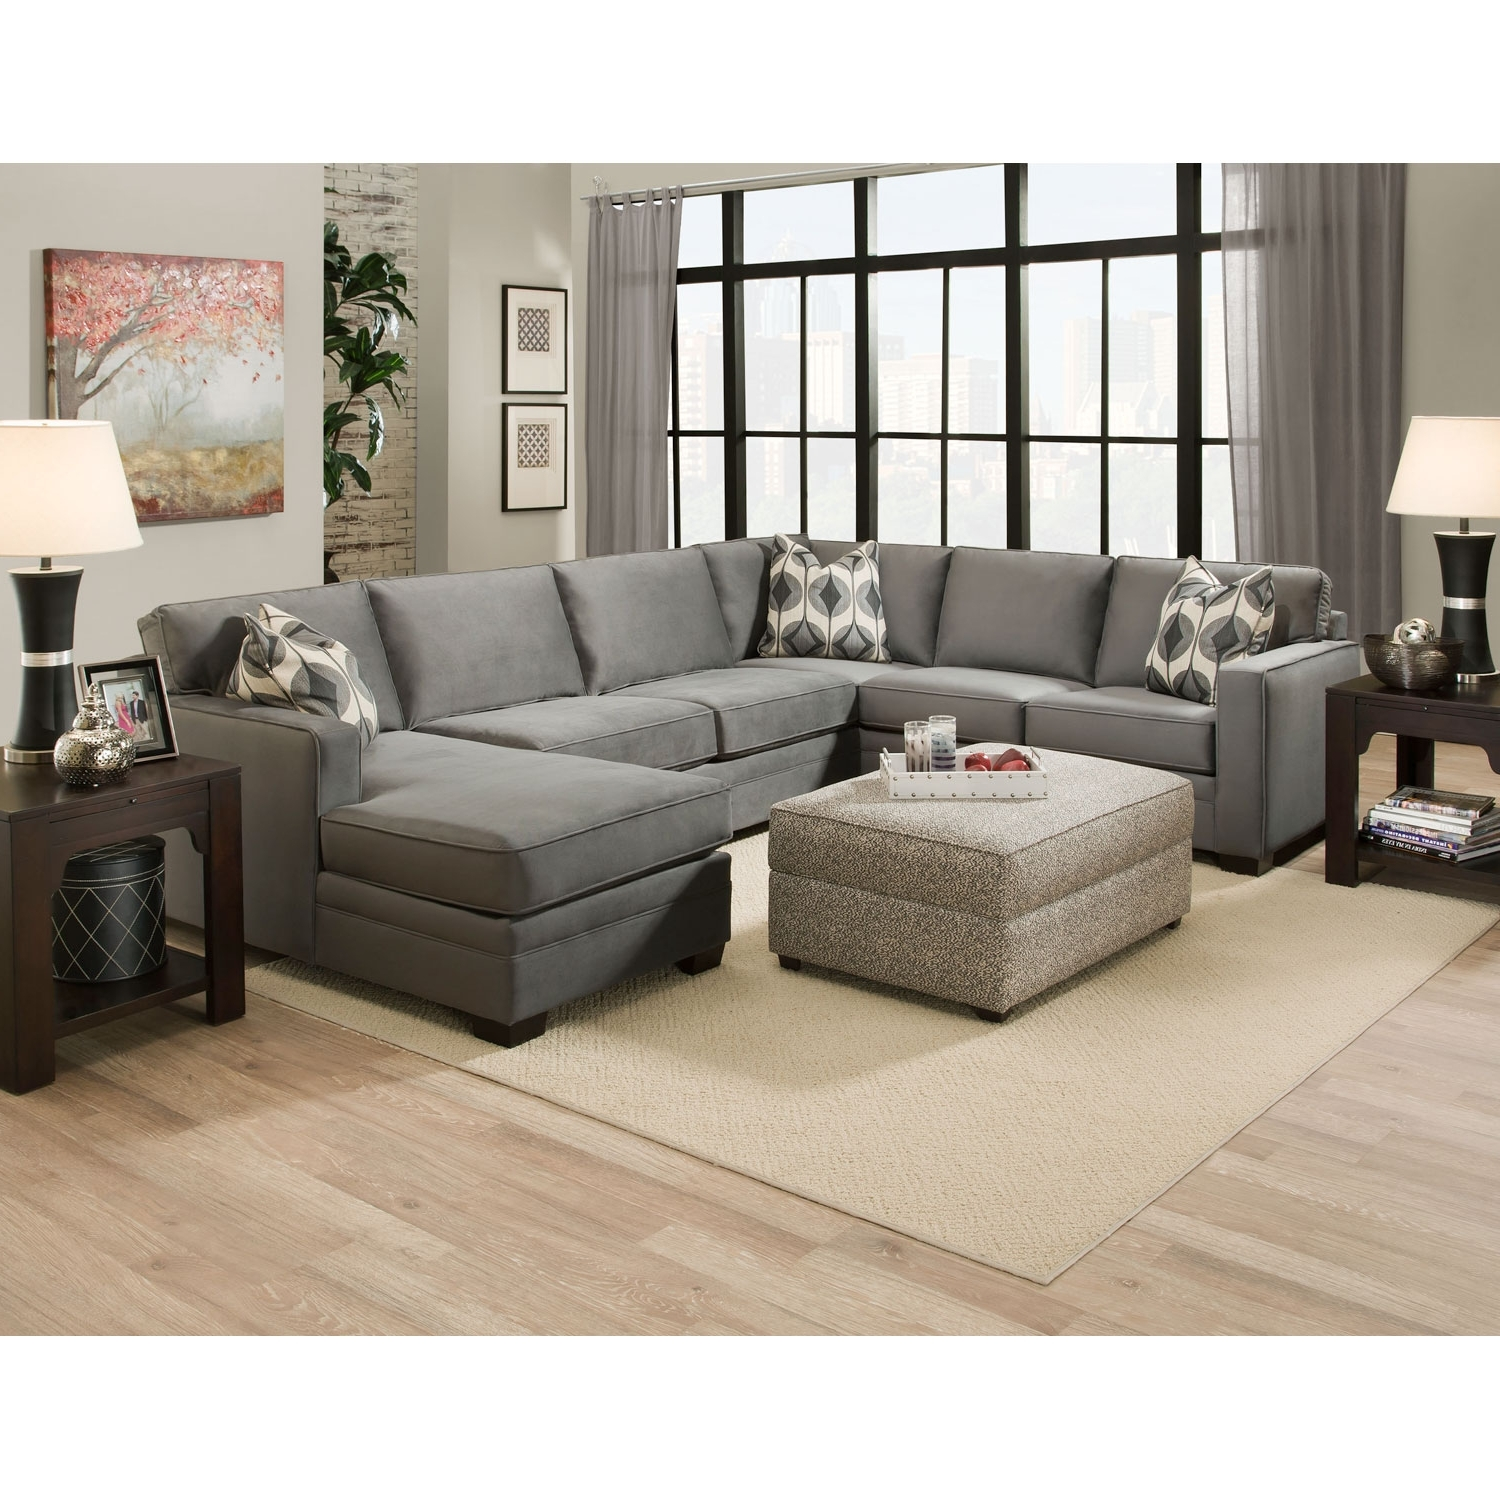 Gray Extra Large U Shaped Sectional Sofa With Chaise And Accent Intended For 2019 Extra Large U Shaped Sectionals (View 5 of 20)